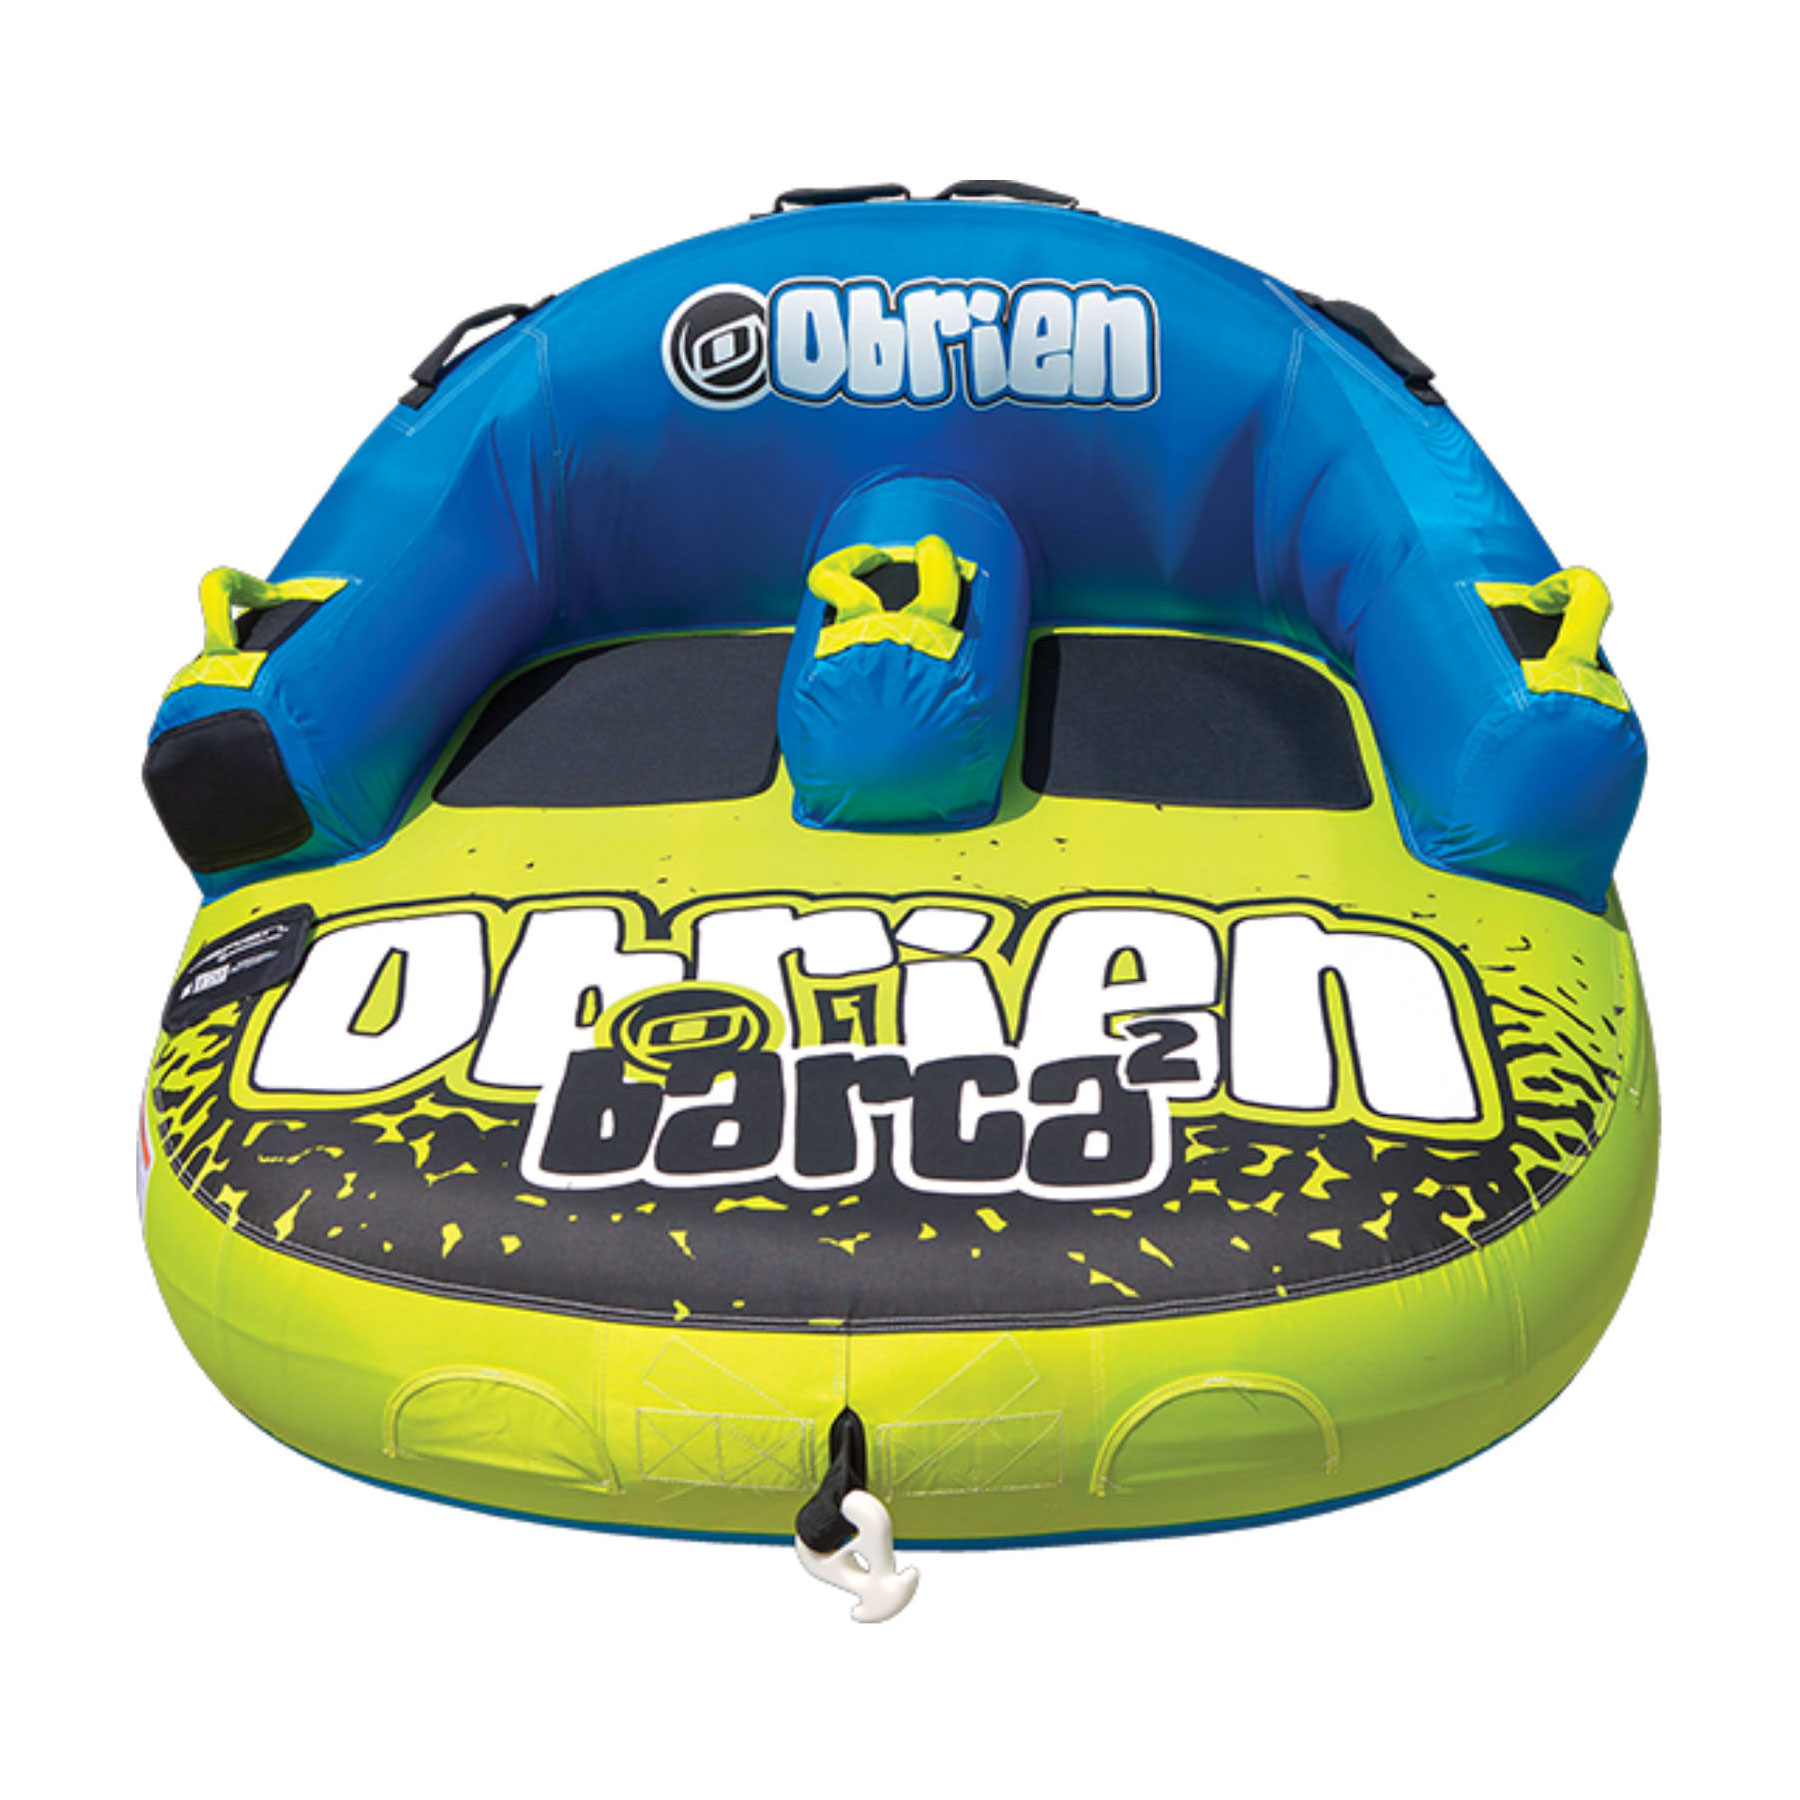 OBrien Barca 2 Kickback Inflatable 2 Person Rider Towable Boat Water Tube Raft by O'Brien Watersports